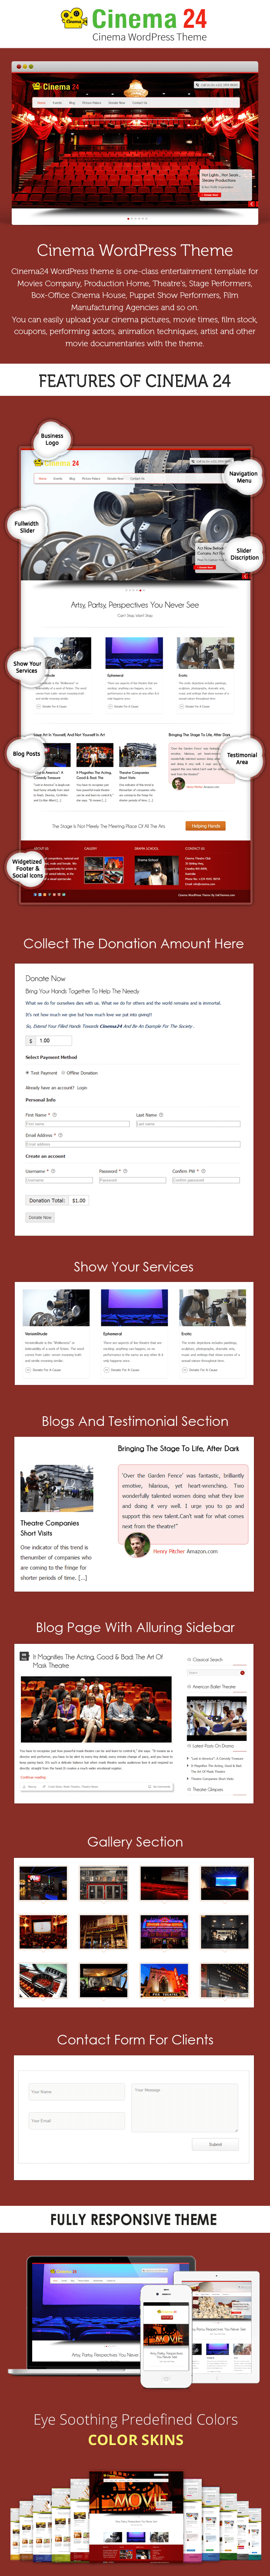 Cinema WordPress Theme